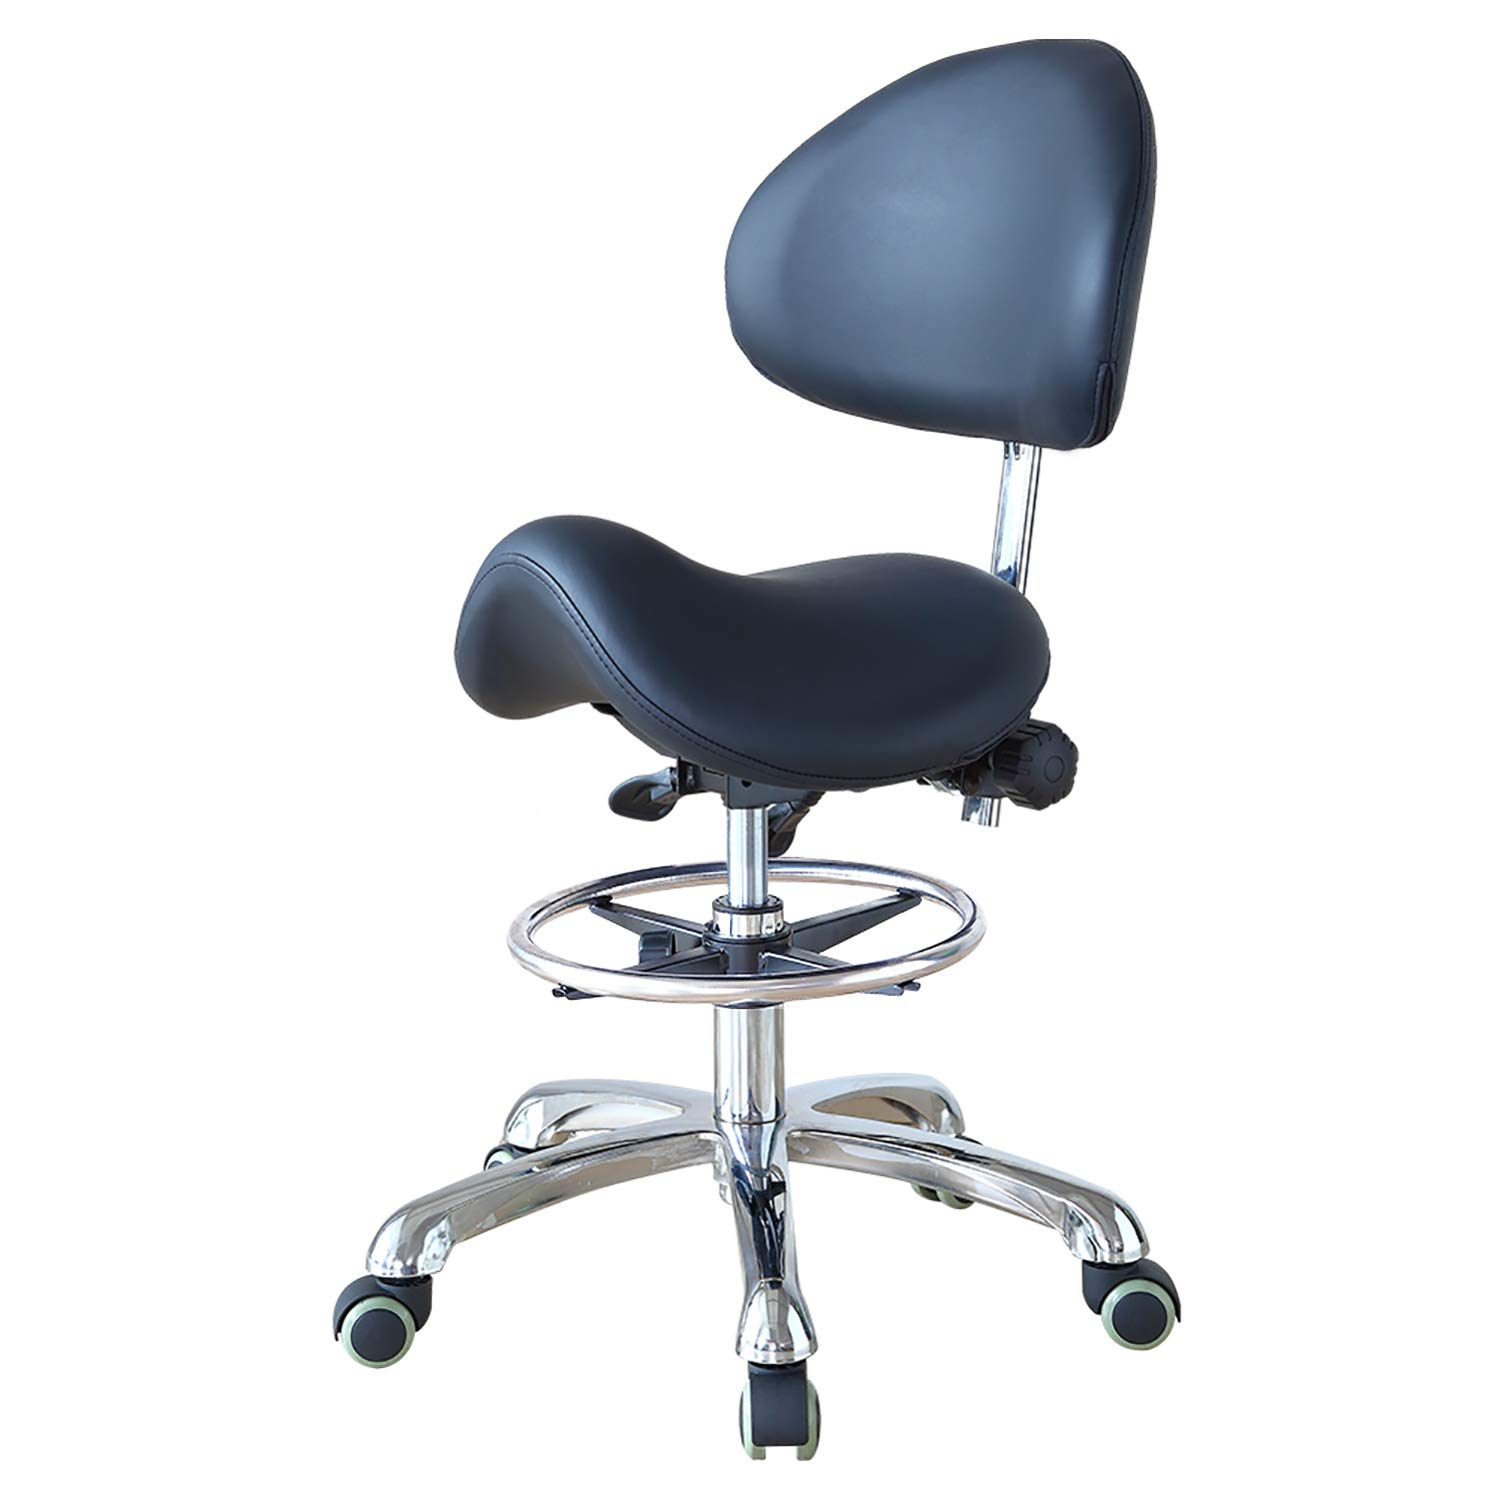 Hydraulic Adjustable Rolling Ergonomic Seat Style Saddle Stool Chair with Backrest and Footrest for Home Office Dental Clinic Use(FOHGFNT),Black